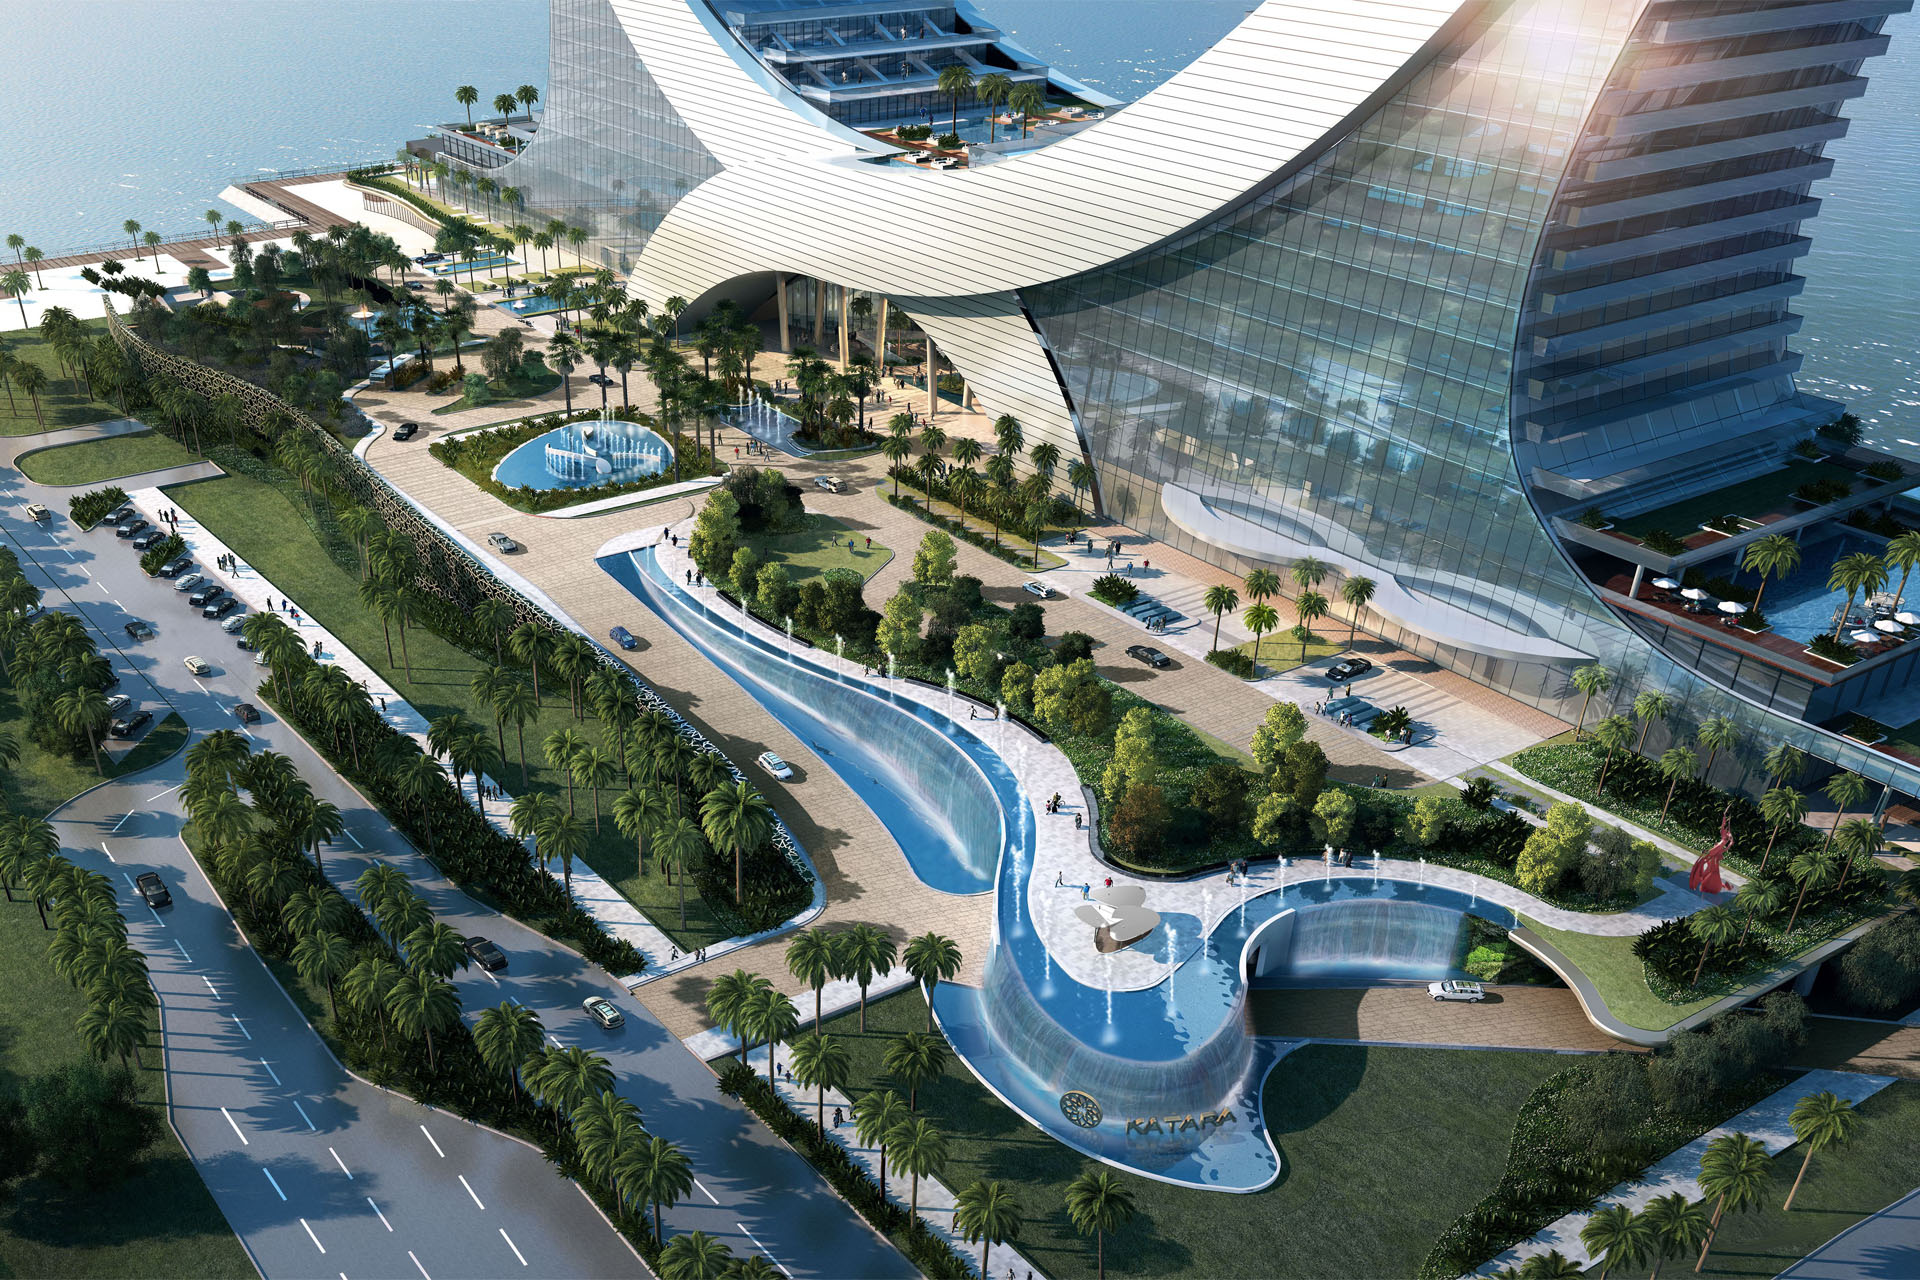 5 And 6 Lusail Katara Hotel Doha Qatar Interiors Inside Ideas Interiors design about Everything [magnanprojects.com]